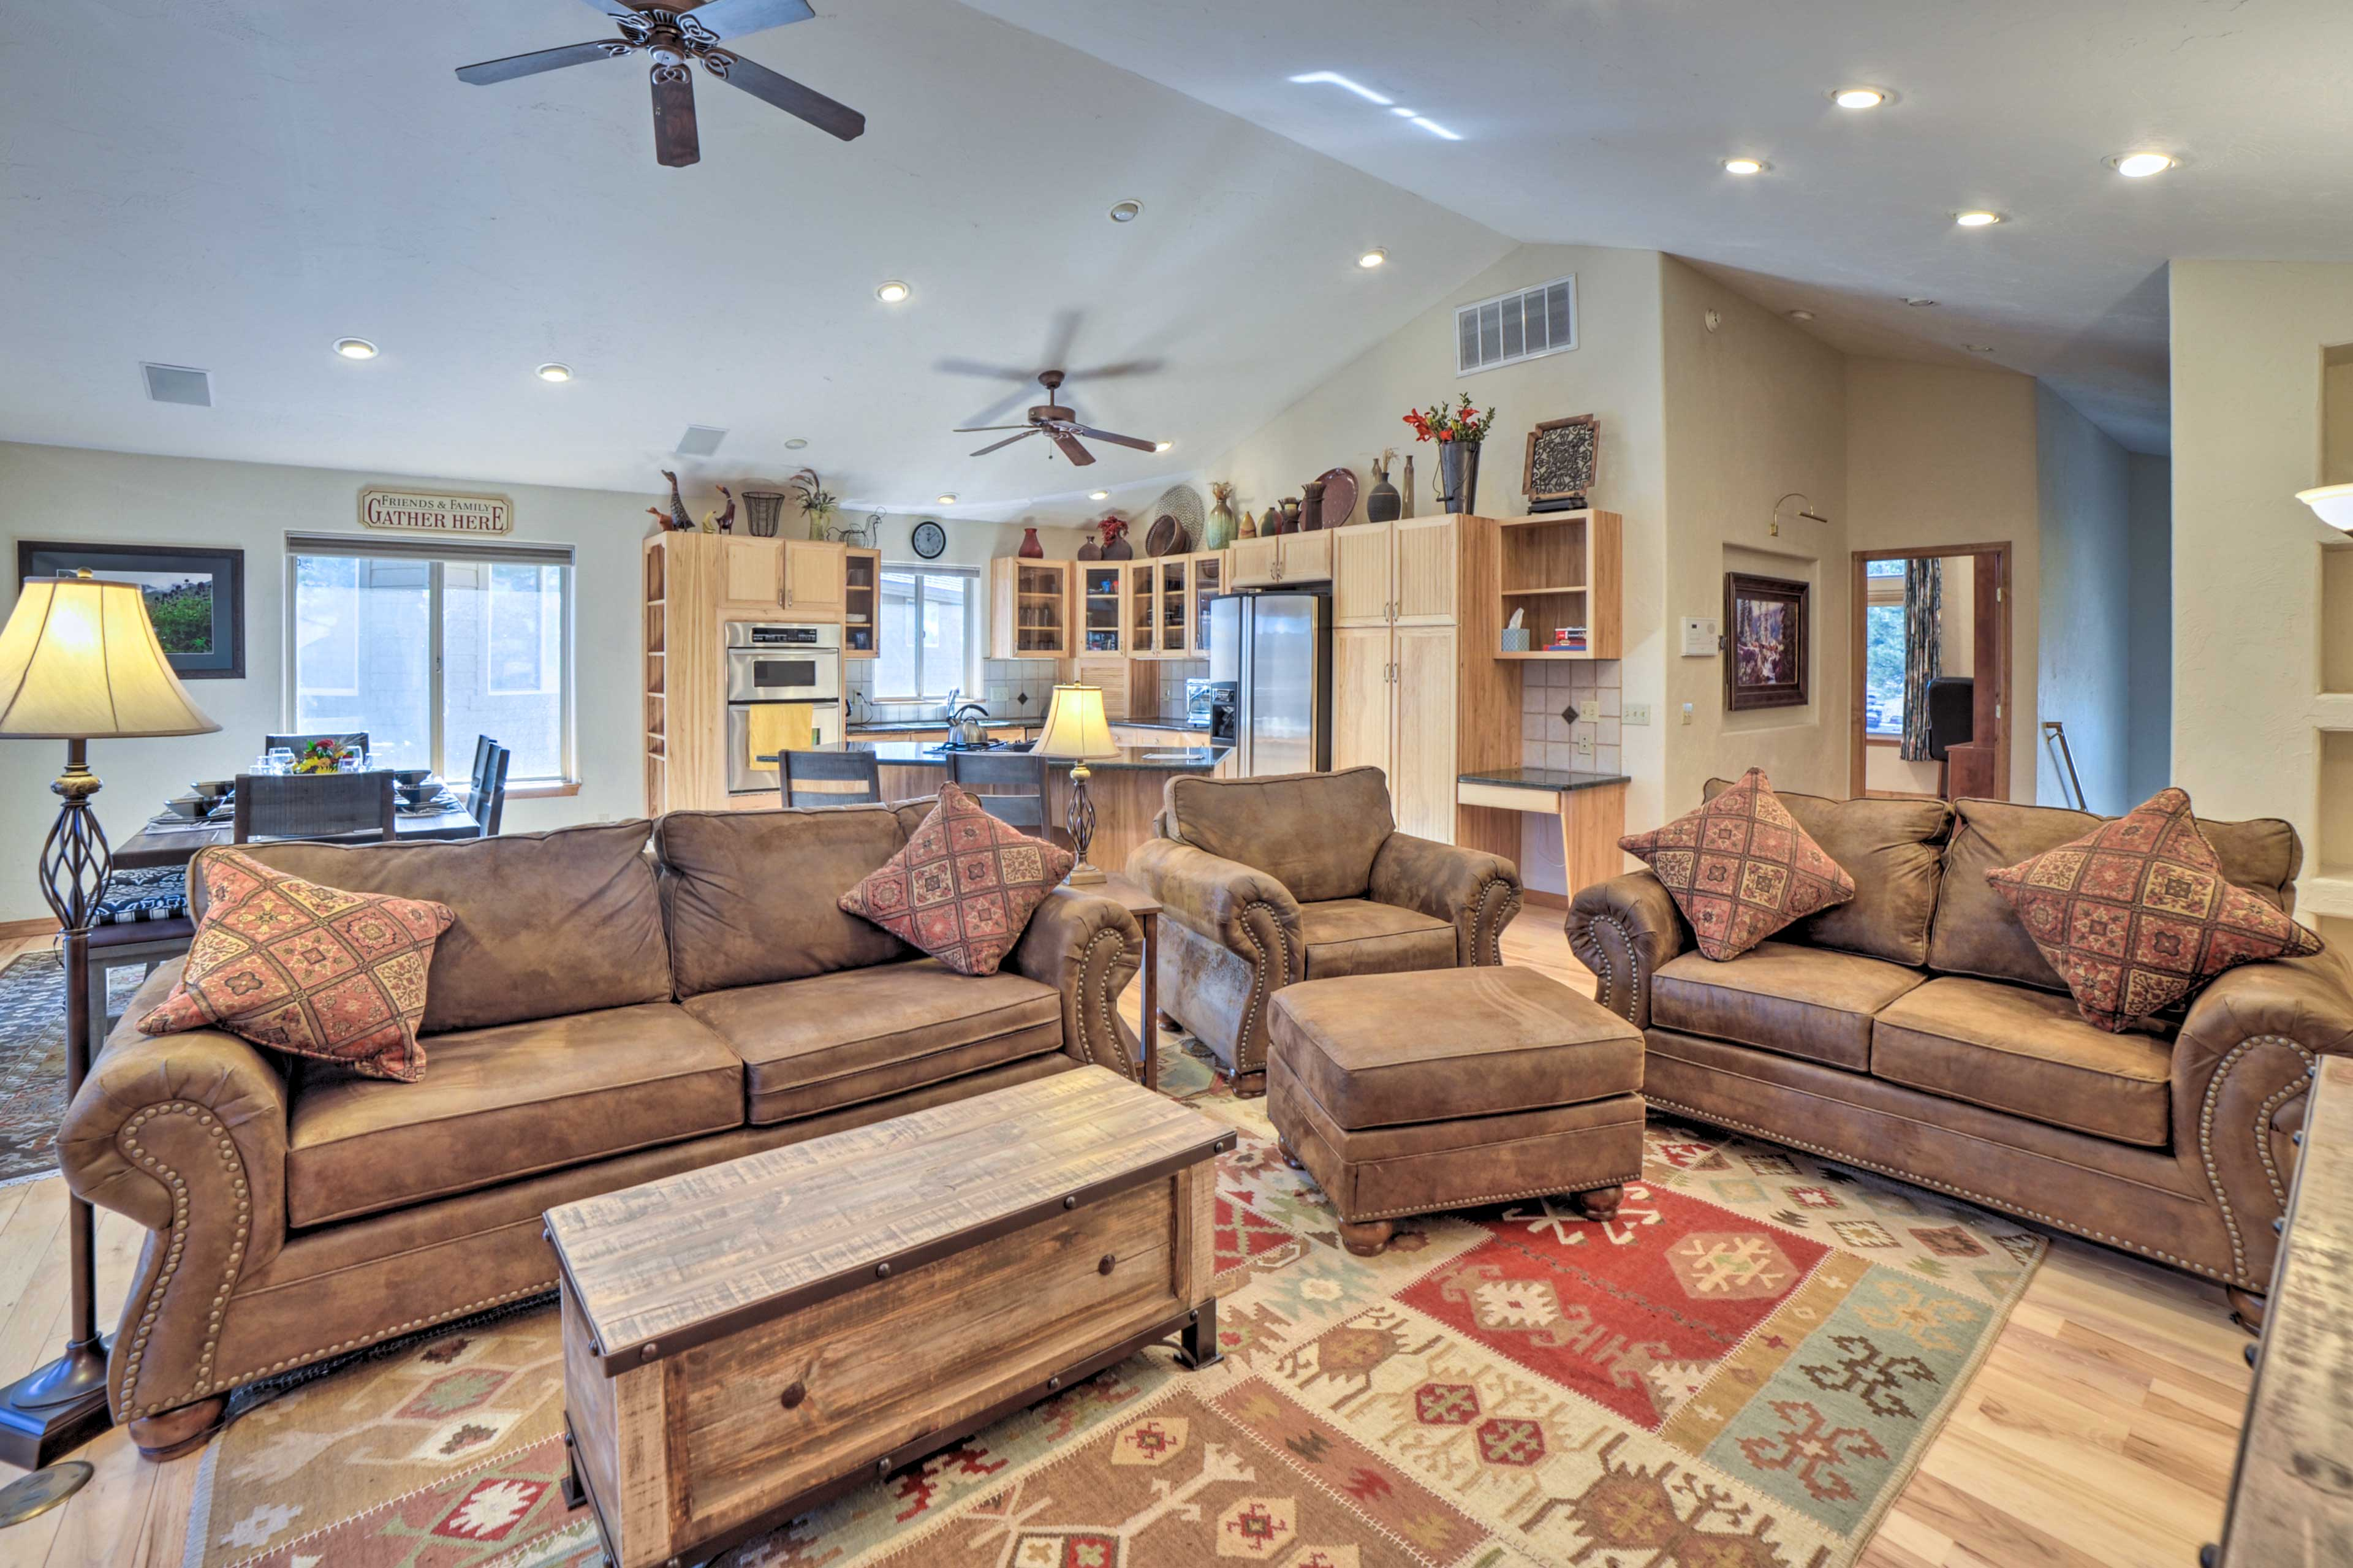 The open floor plan and vaulted ceilings make the condo feel even larger!